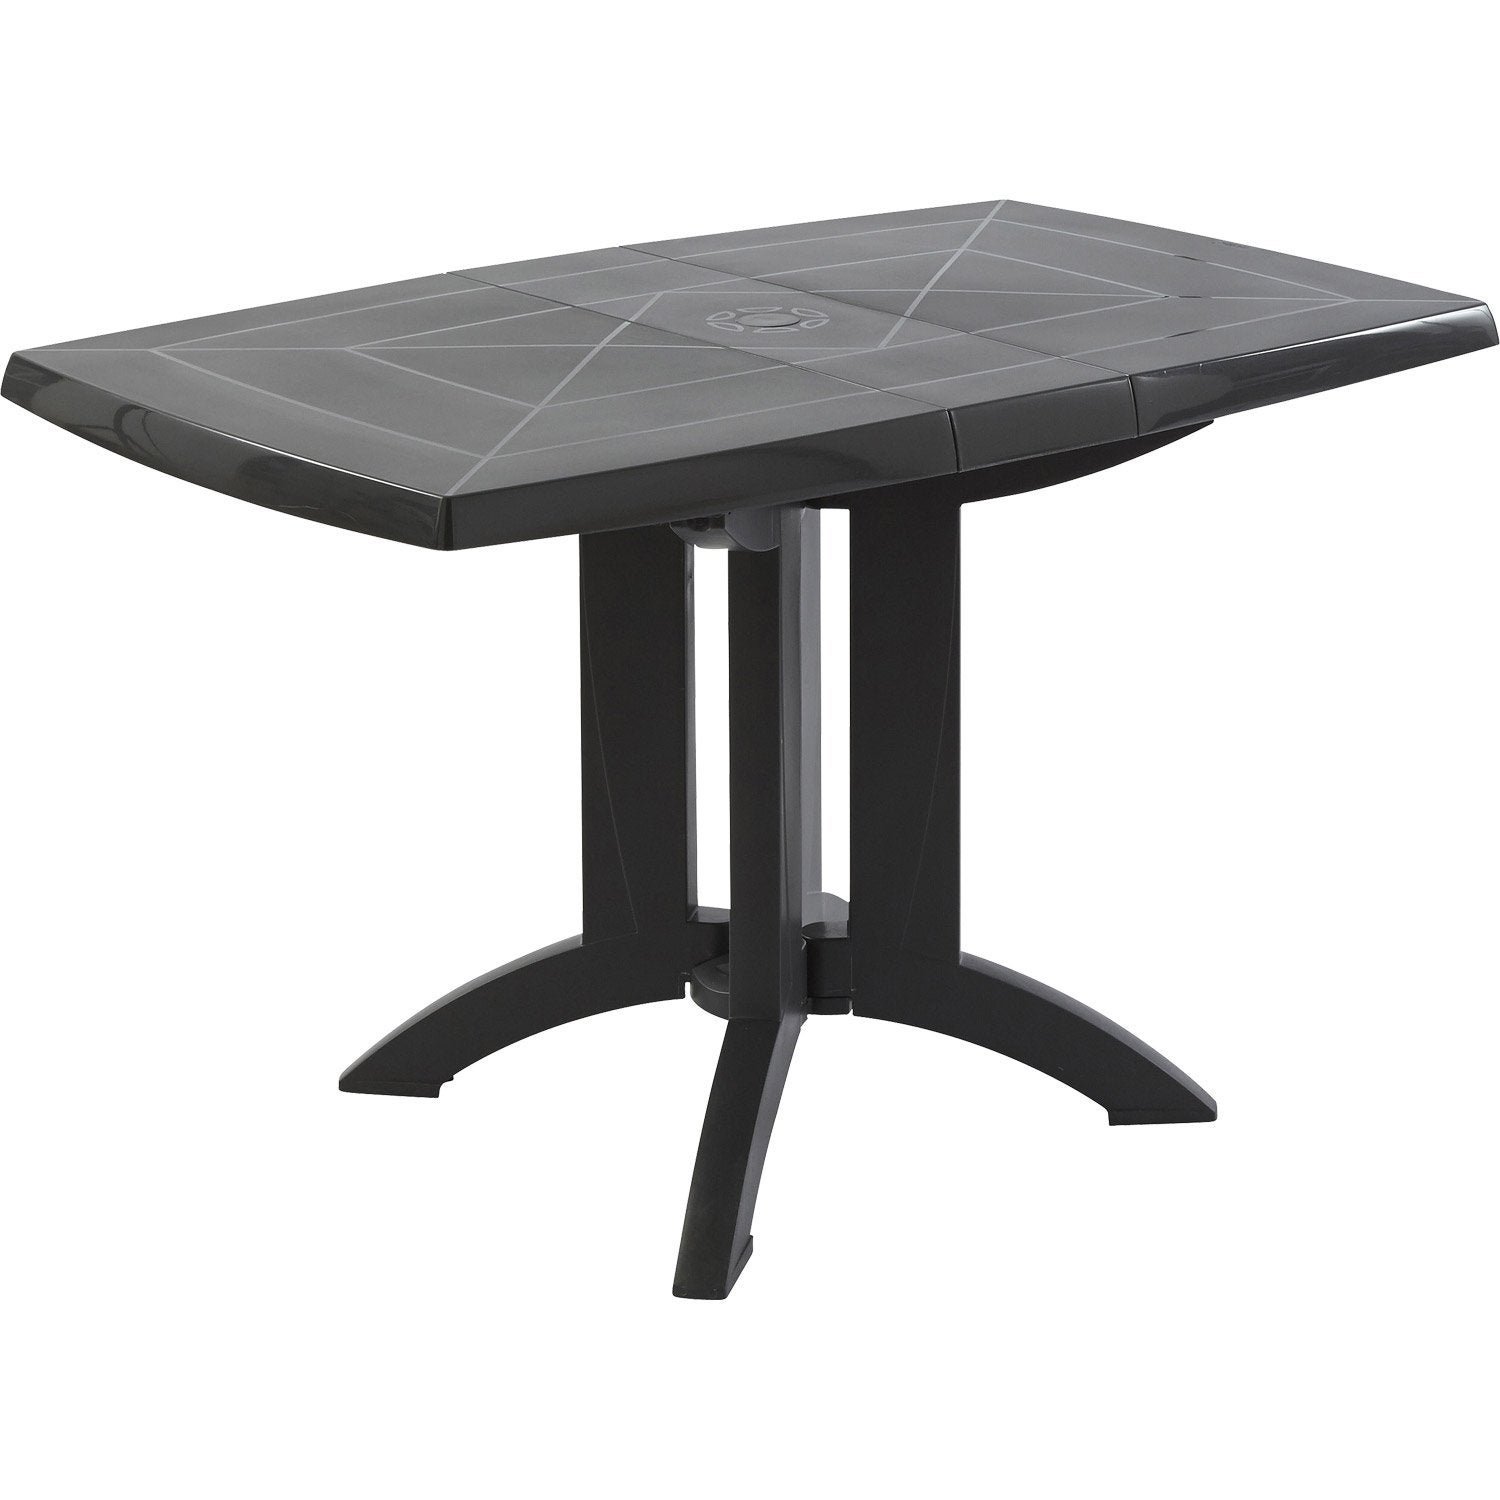 Table de jardin grosfillex v ga rectangulaire anthracite 4 for Table exterieur plastique noir